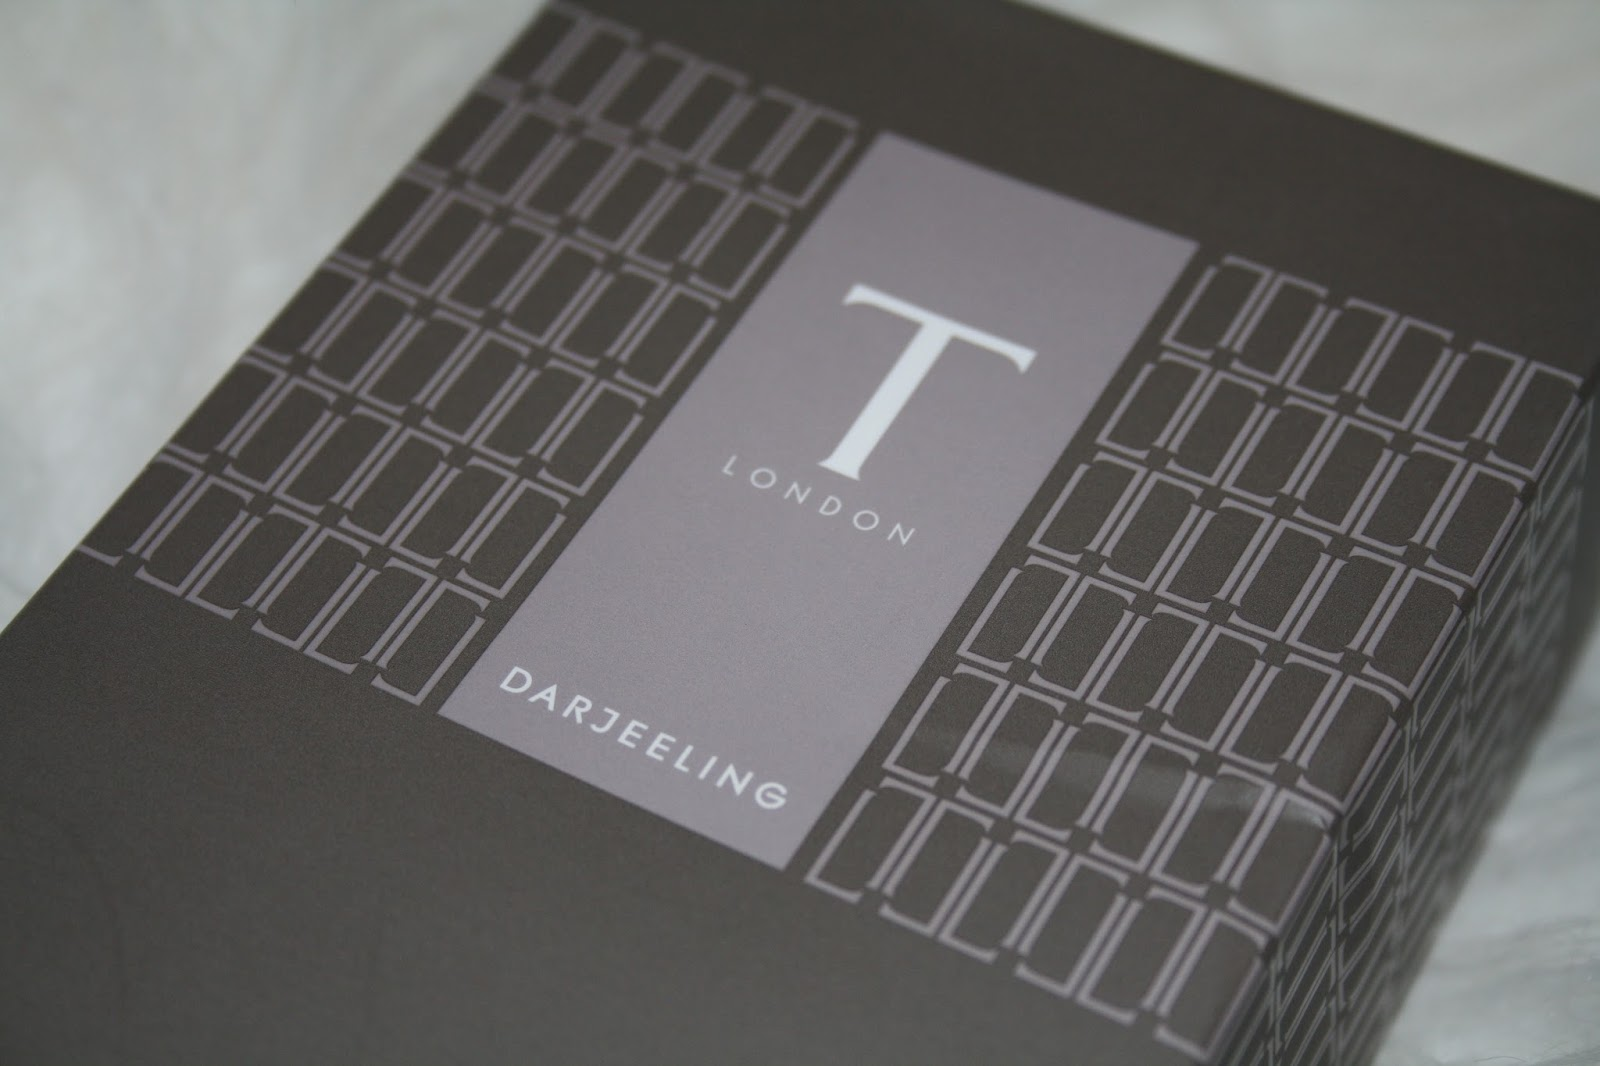 T London - Darjeeling